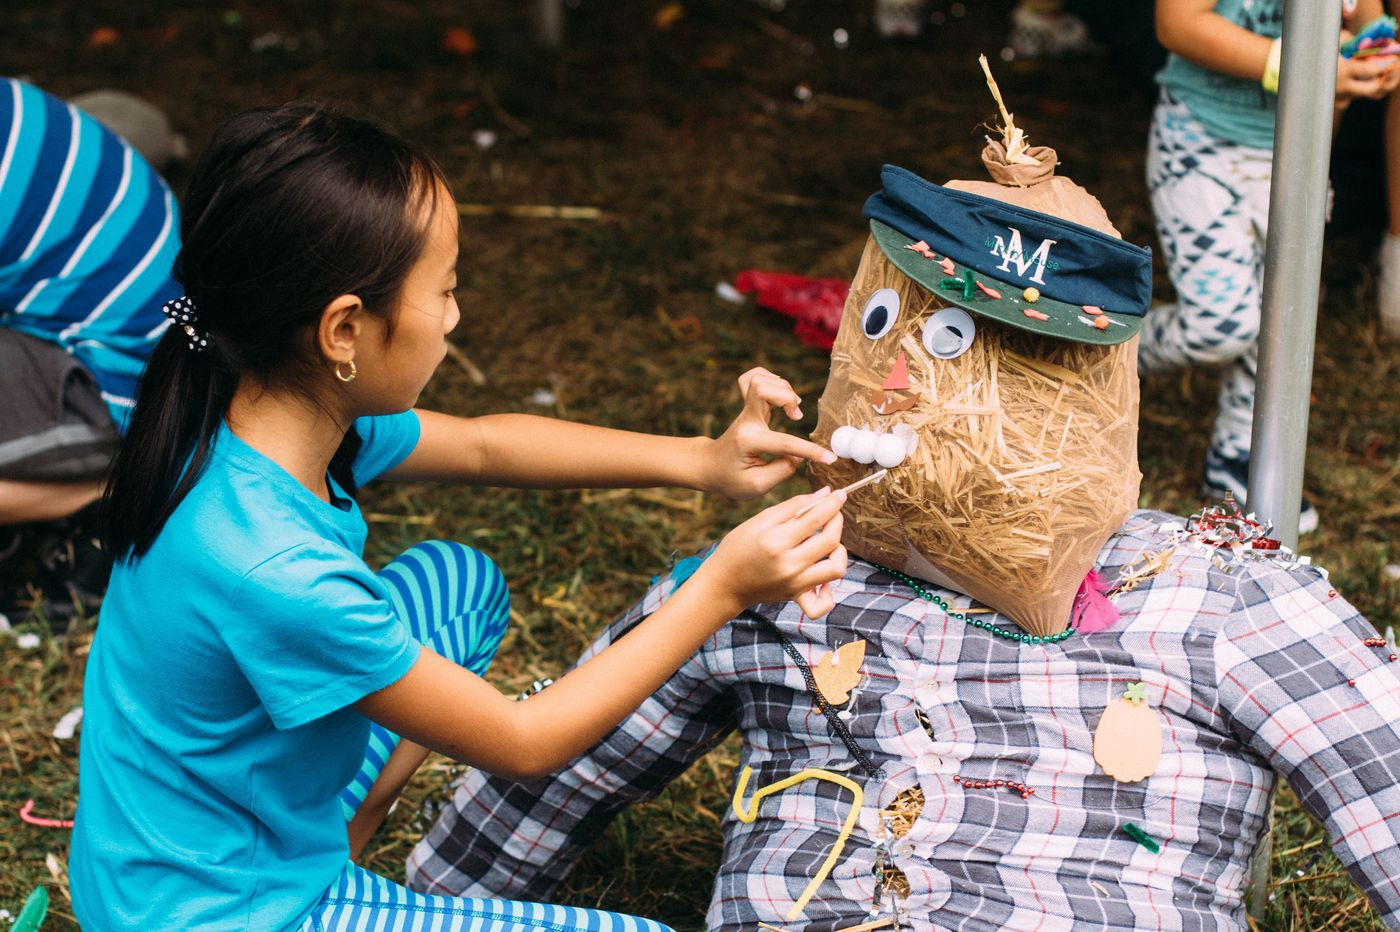 Philly kids and their teacher-parents both need a break. How about a hike? Or a scarecrow build?